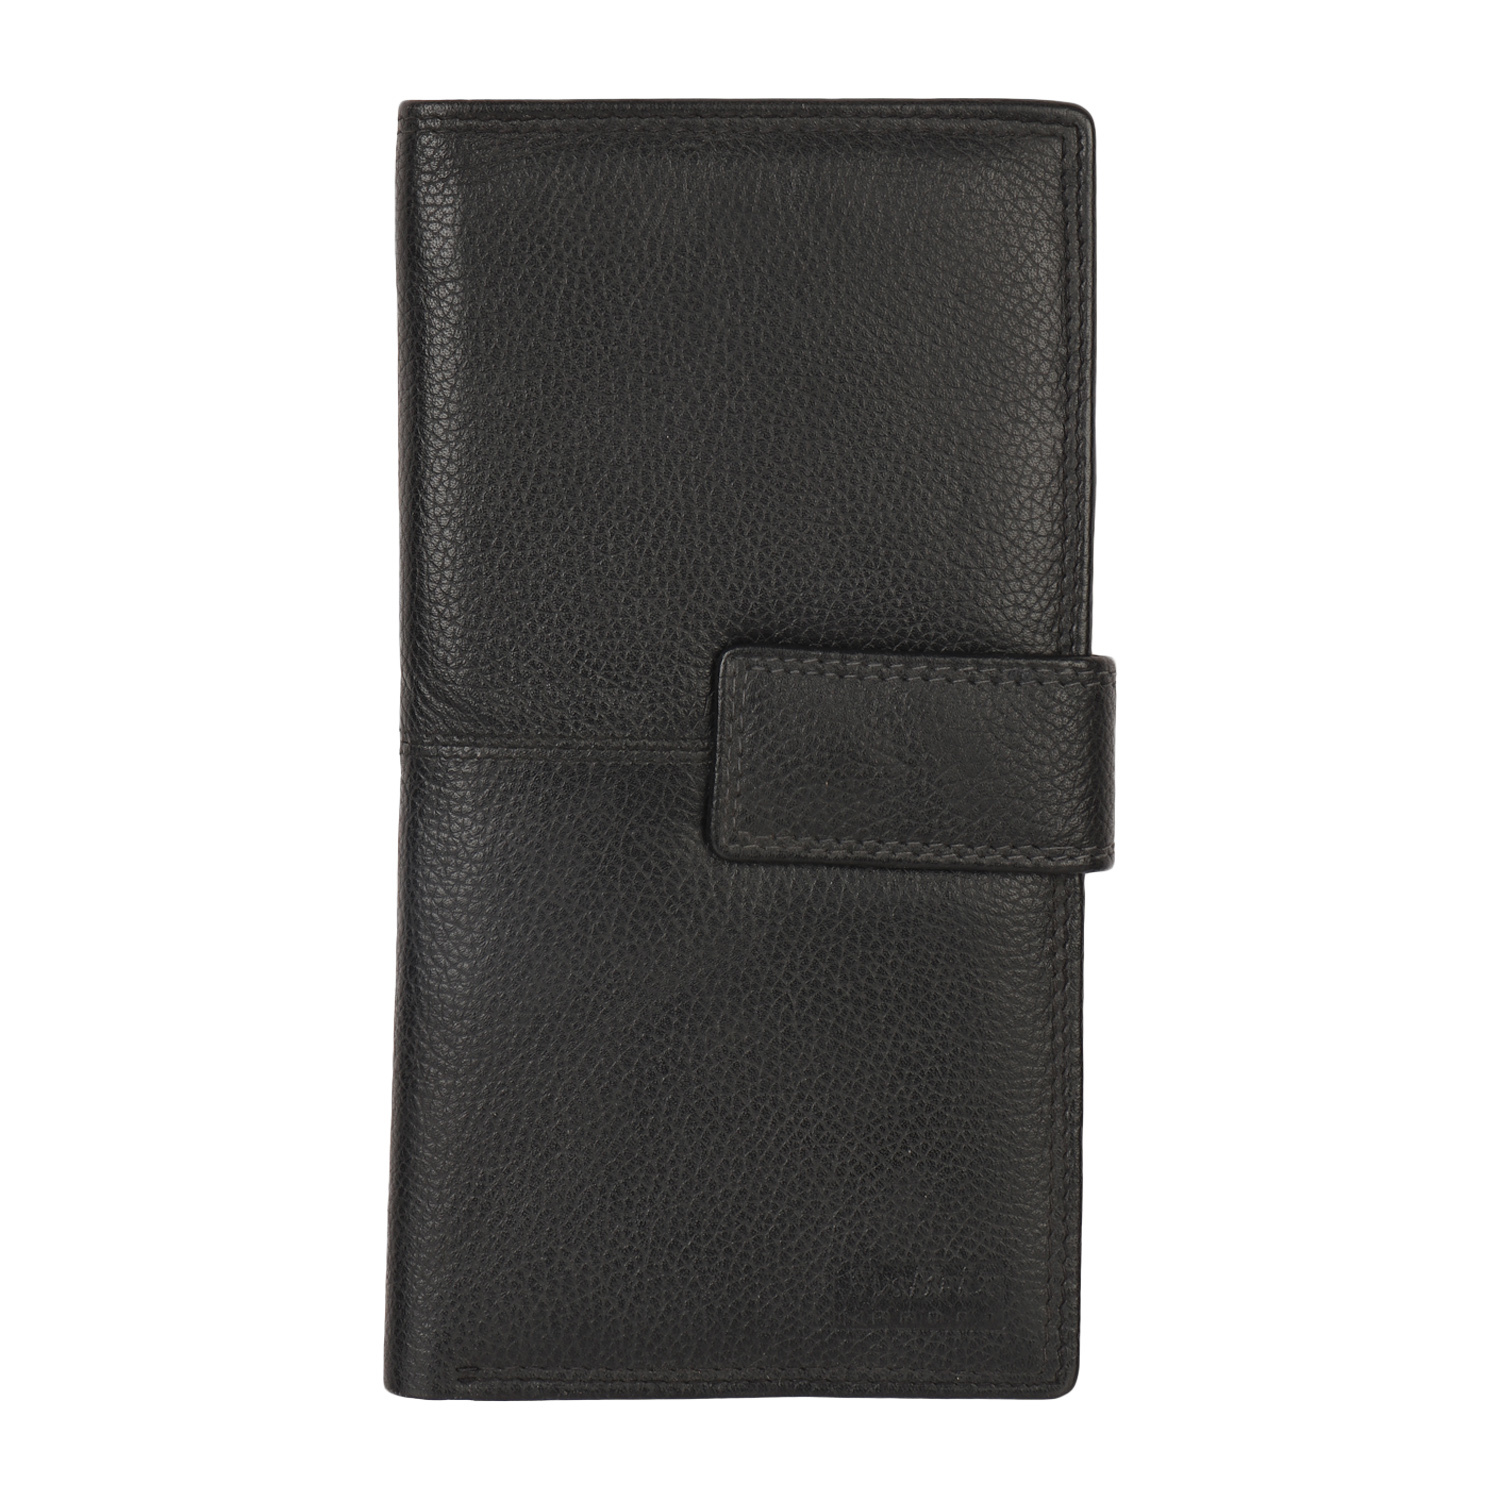 Genuine Black Leather Wallet